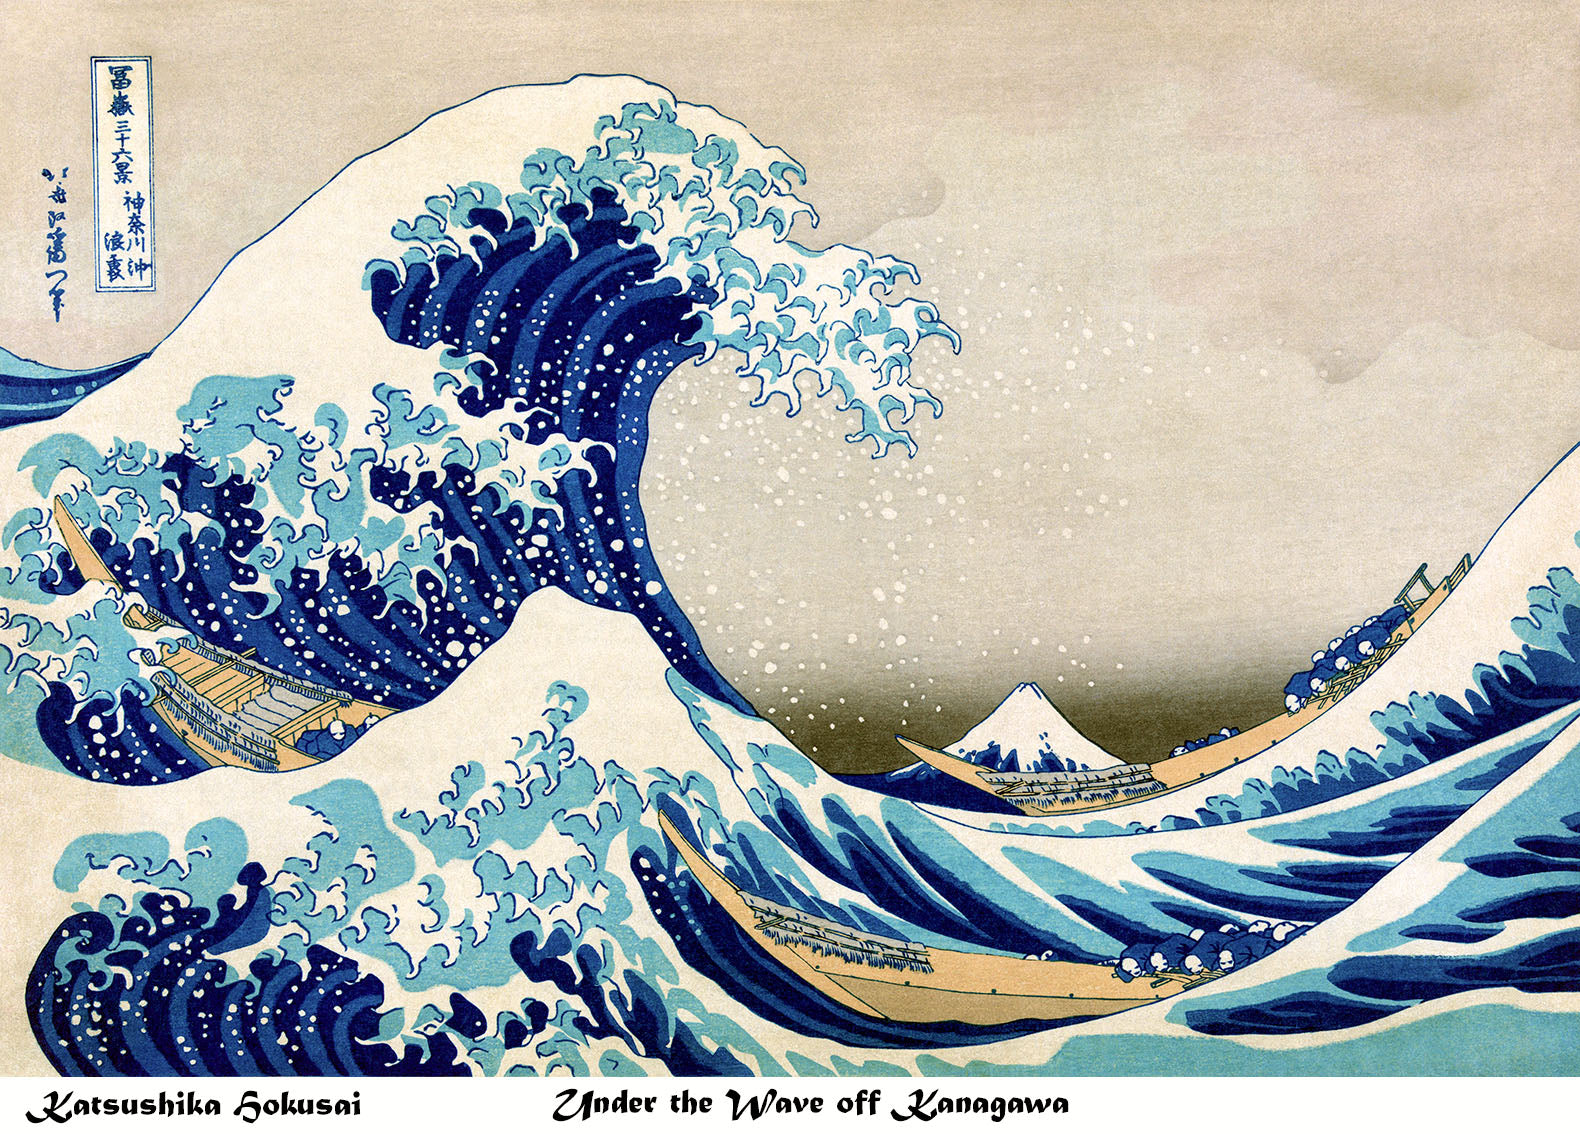 The great wave off kanagawa c 1830 from the thirty six views